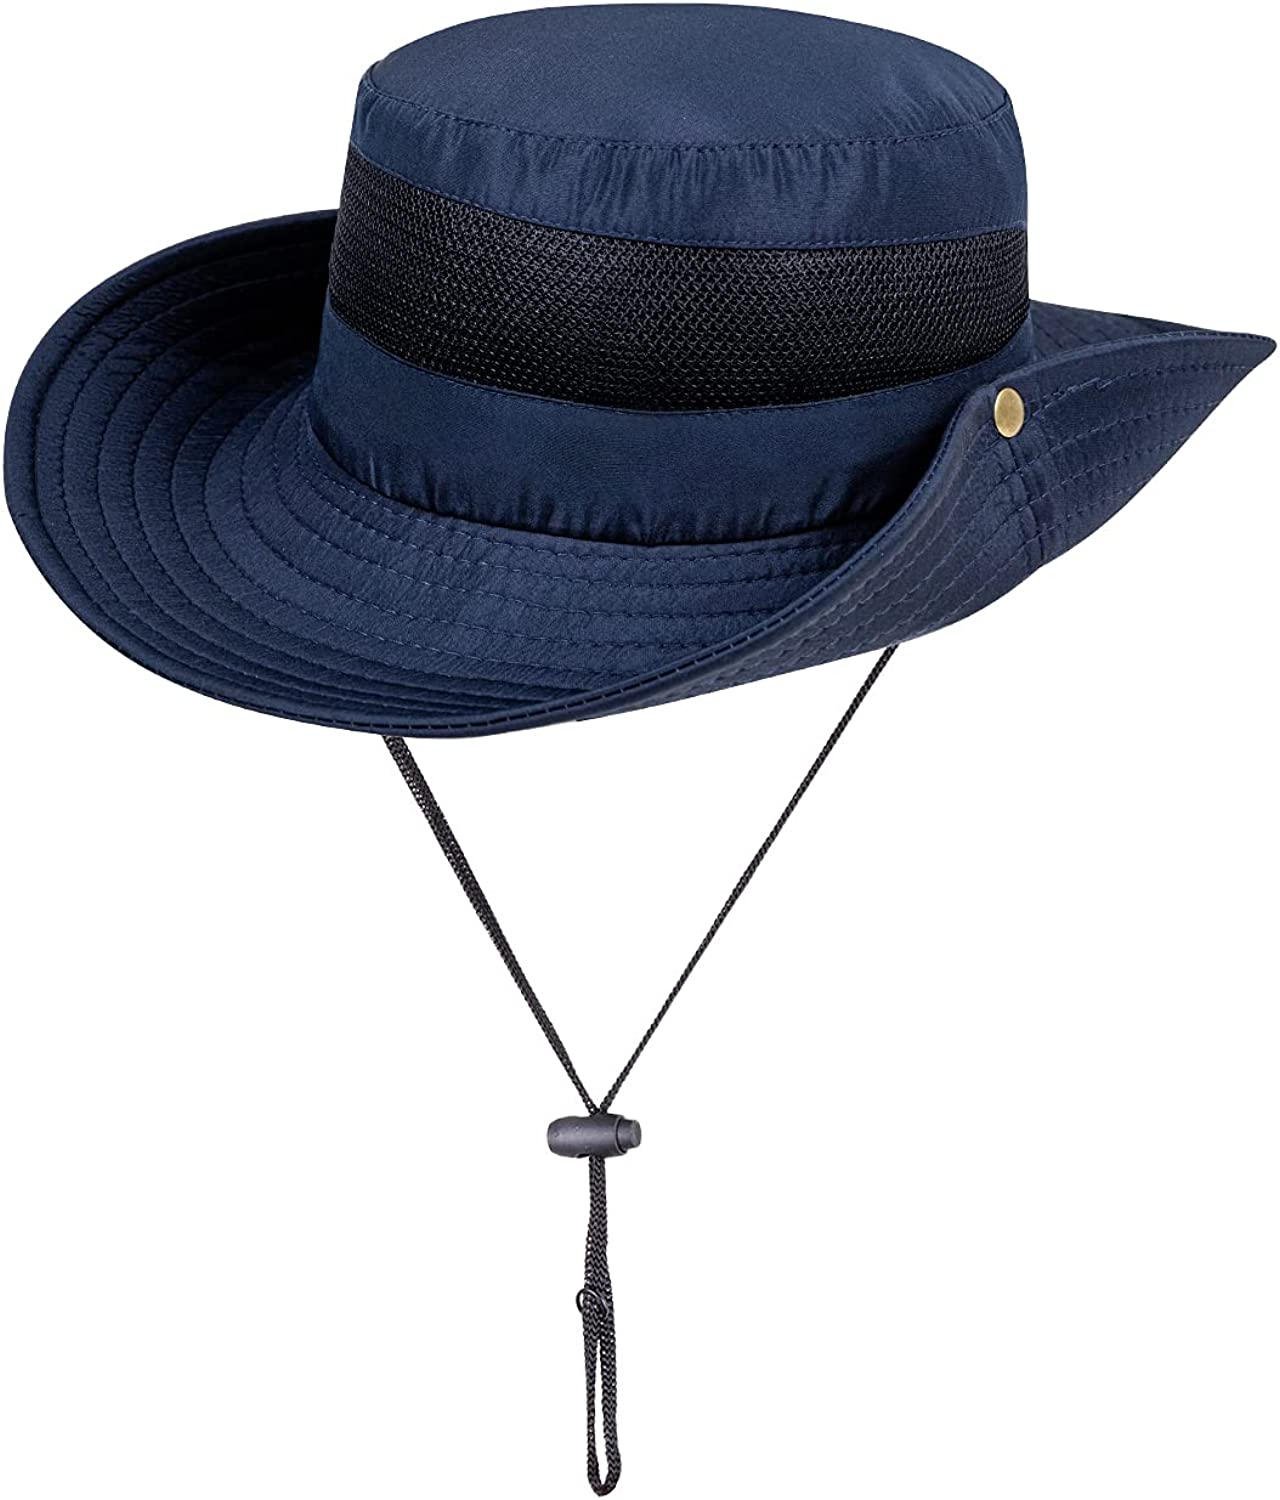 Sun Hats for Men UPF 50+ Charlotte Mall Hat Fishing W Breathable OFFicial Protection